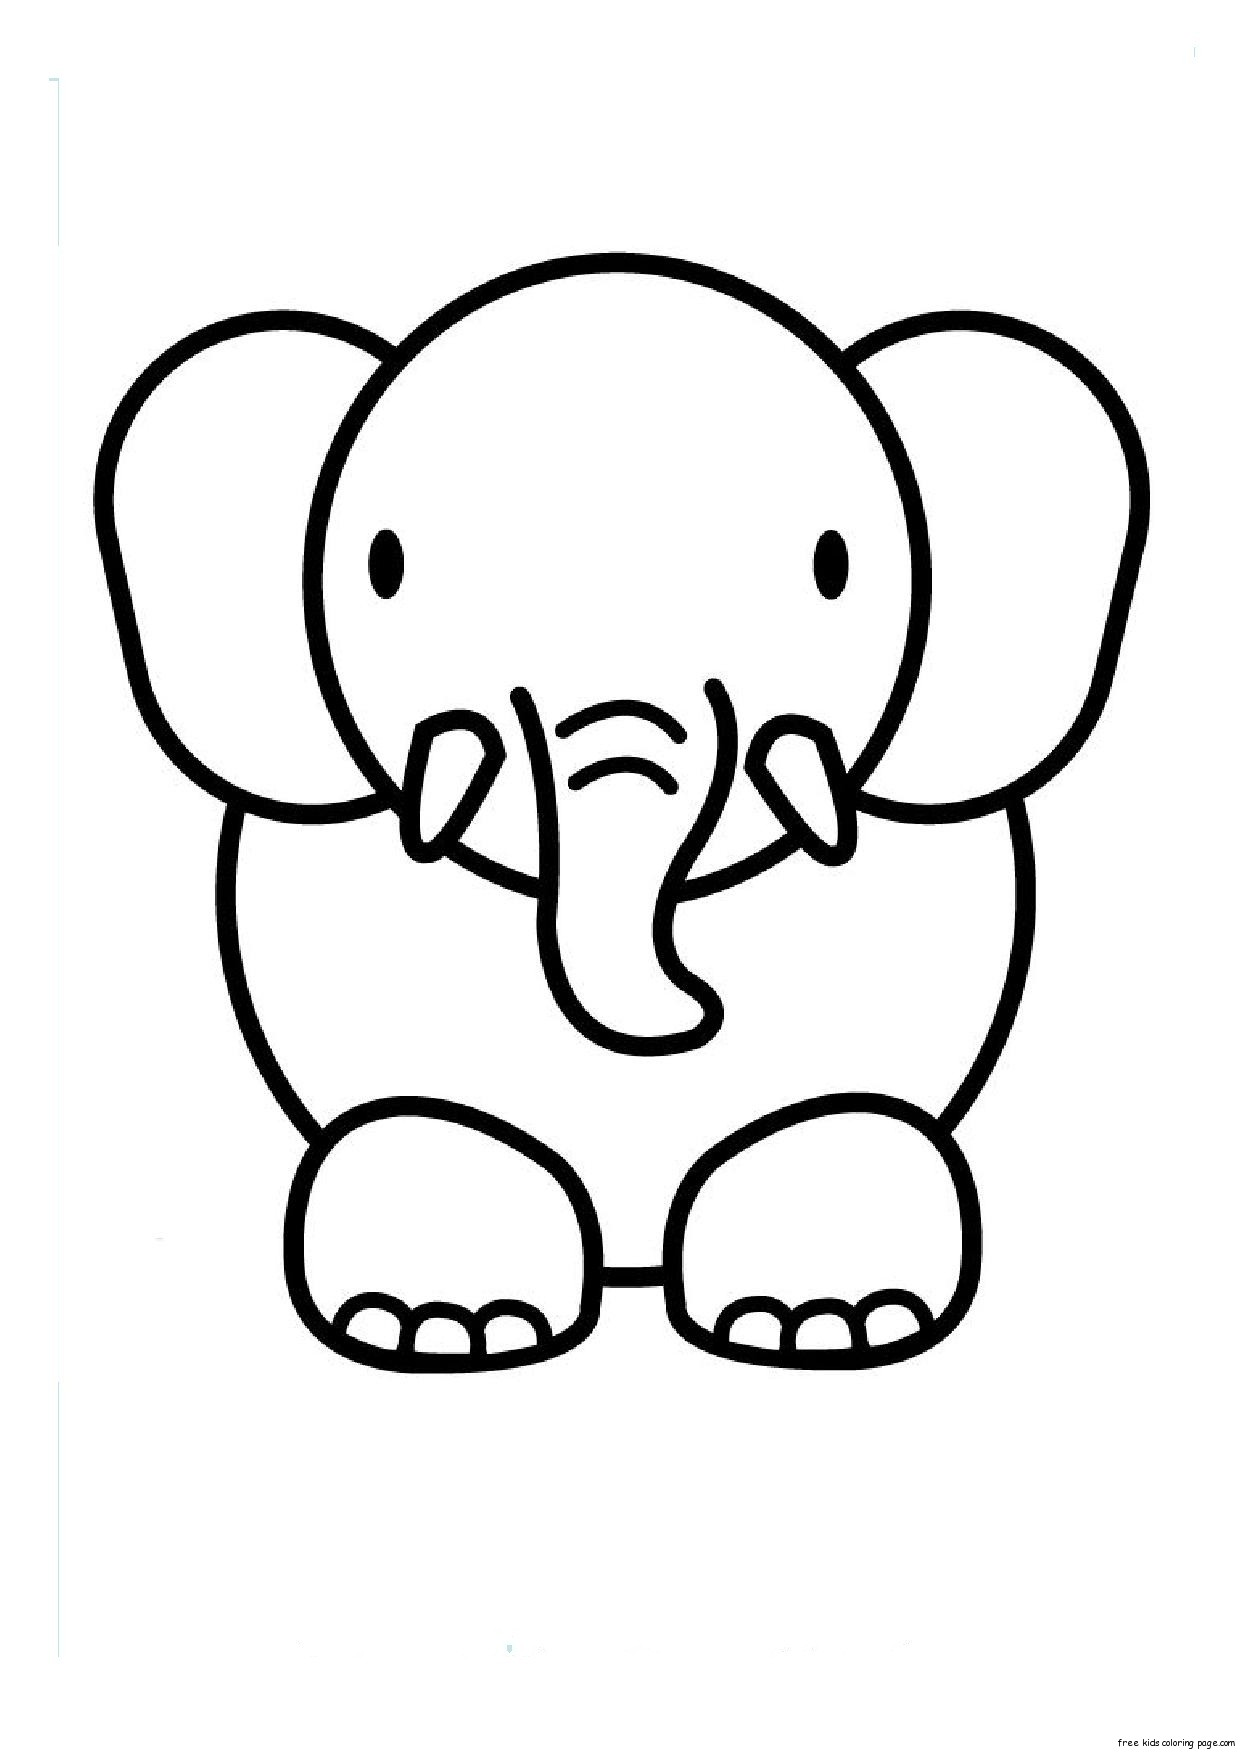 Co coloring pages of a kid - Co Co Coloring Pitchers Of Animals Print Out Pictures Of Animals Coloring Picture Hd For